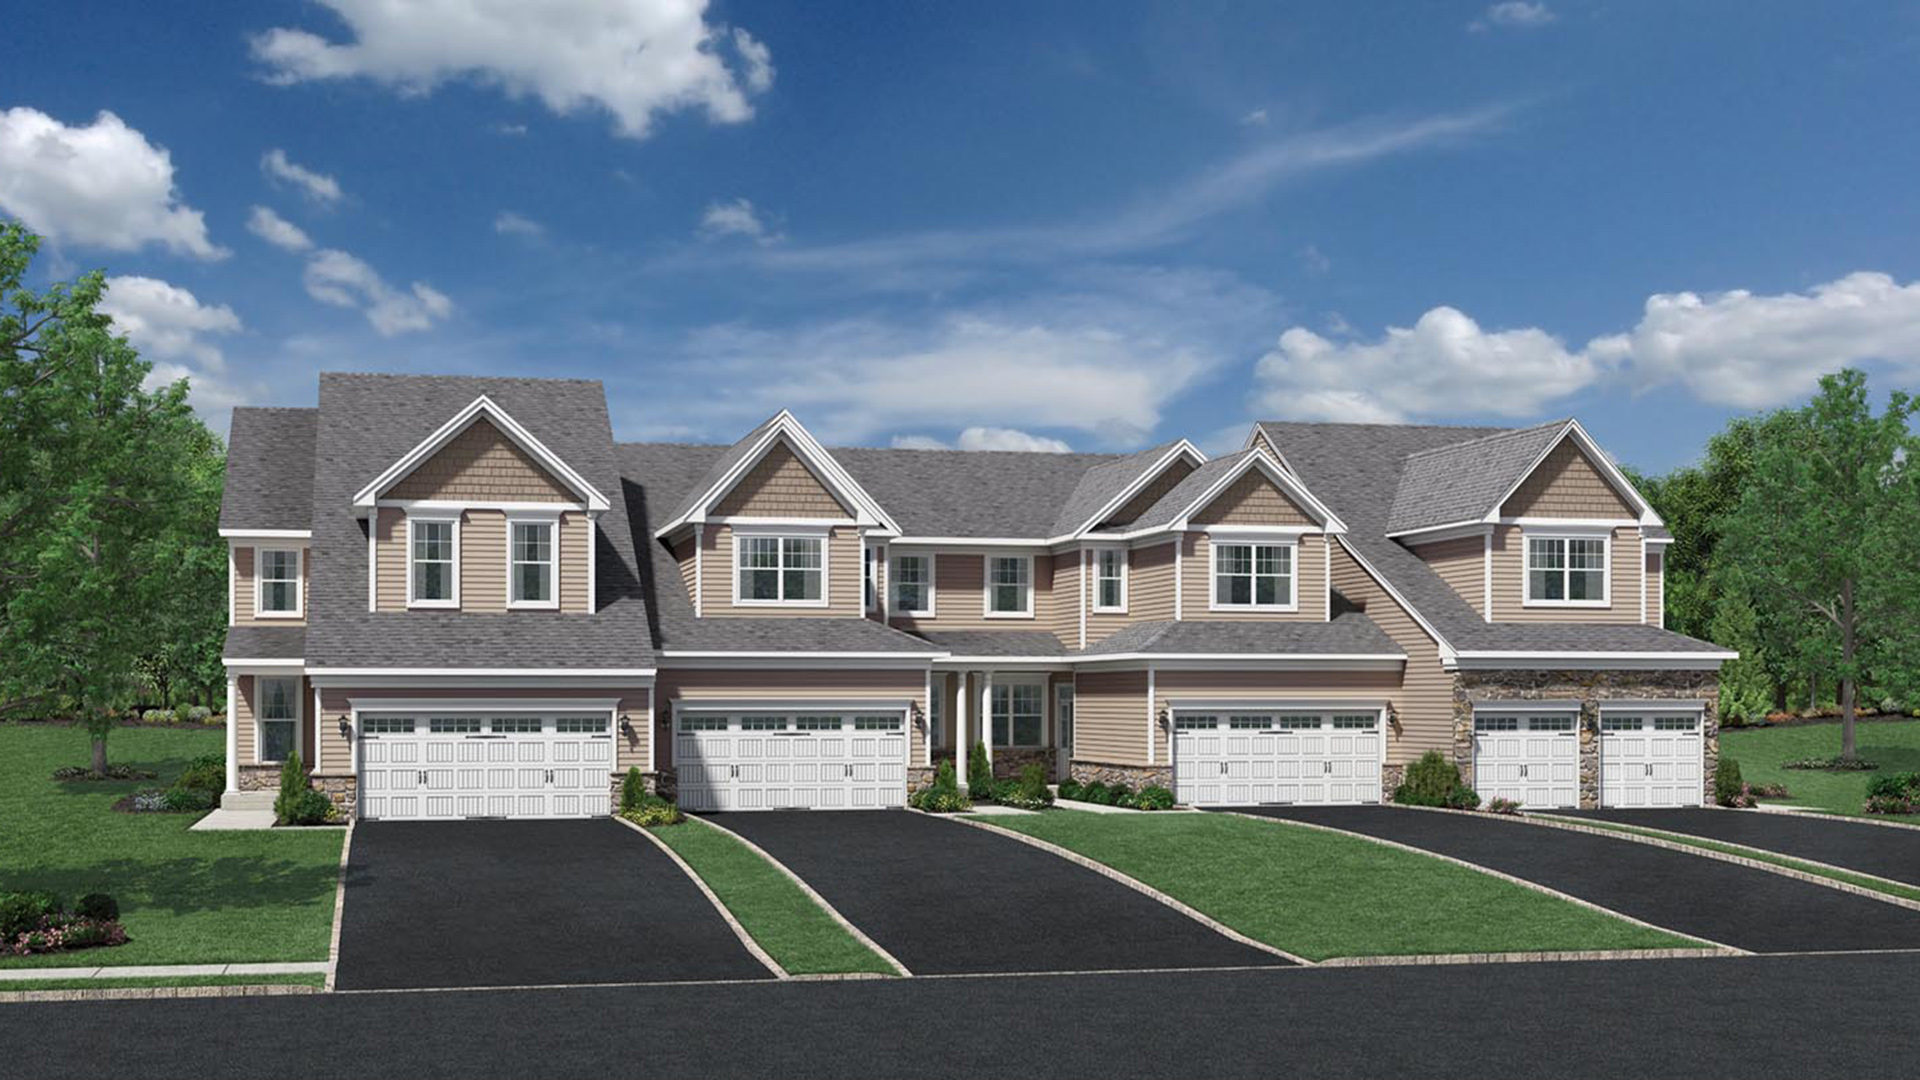 Danbury CT Townhomes for Sale | Rivington by Toll Brothers - The ...